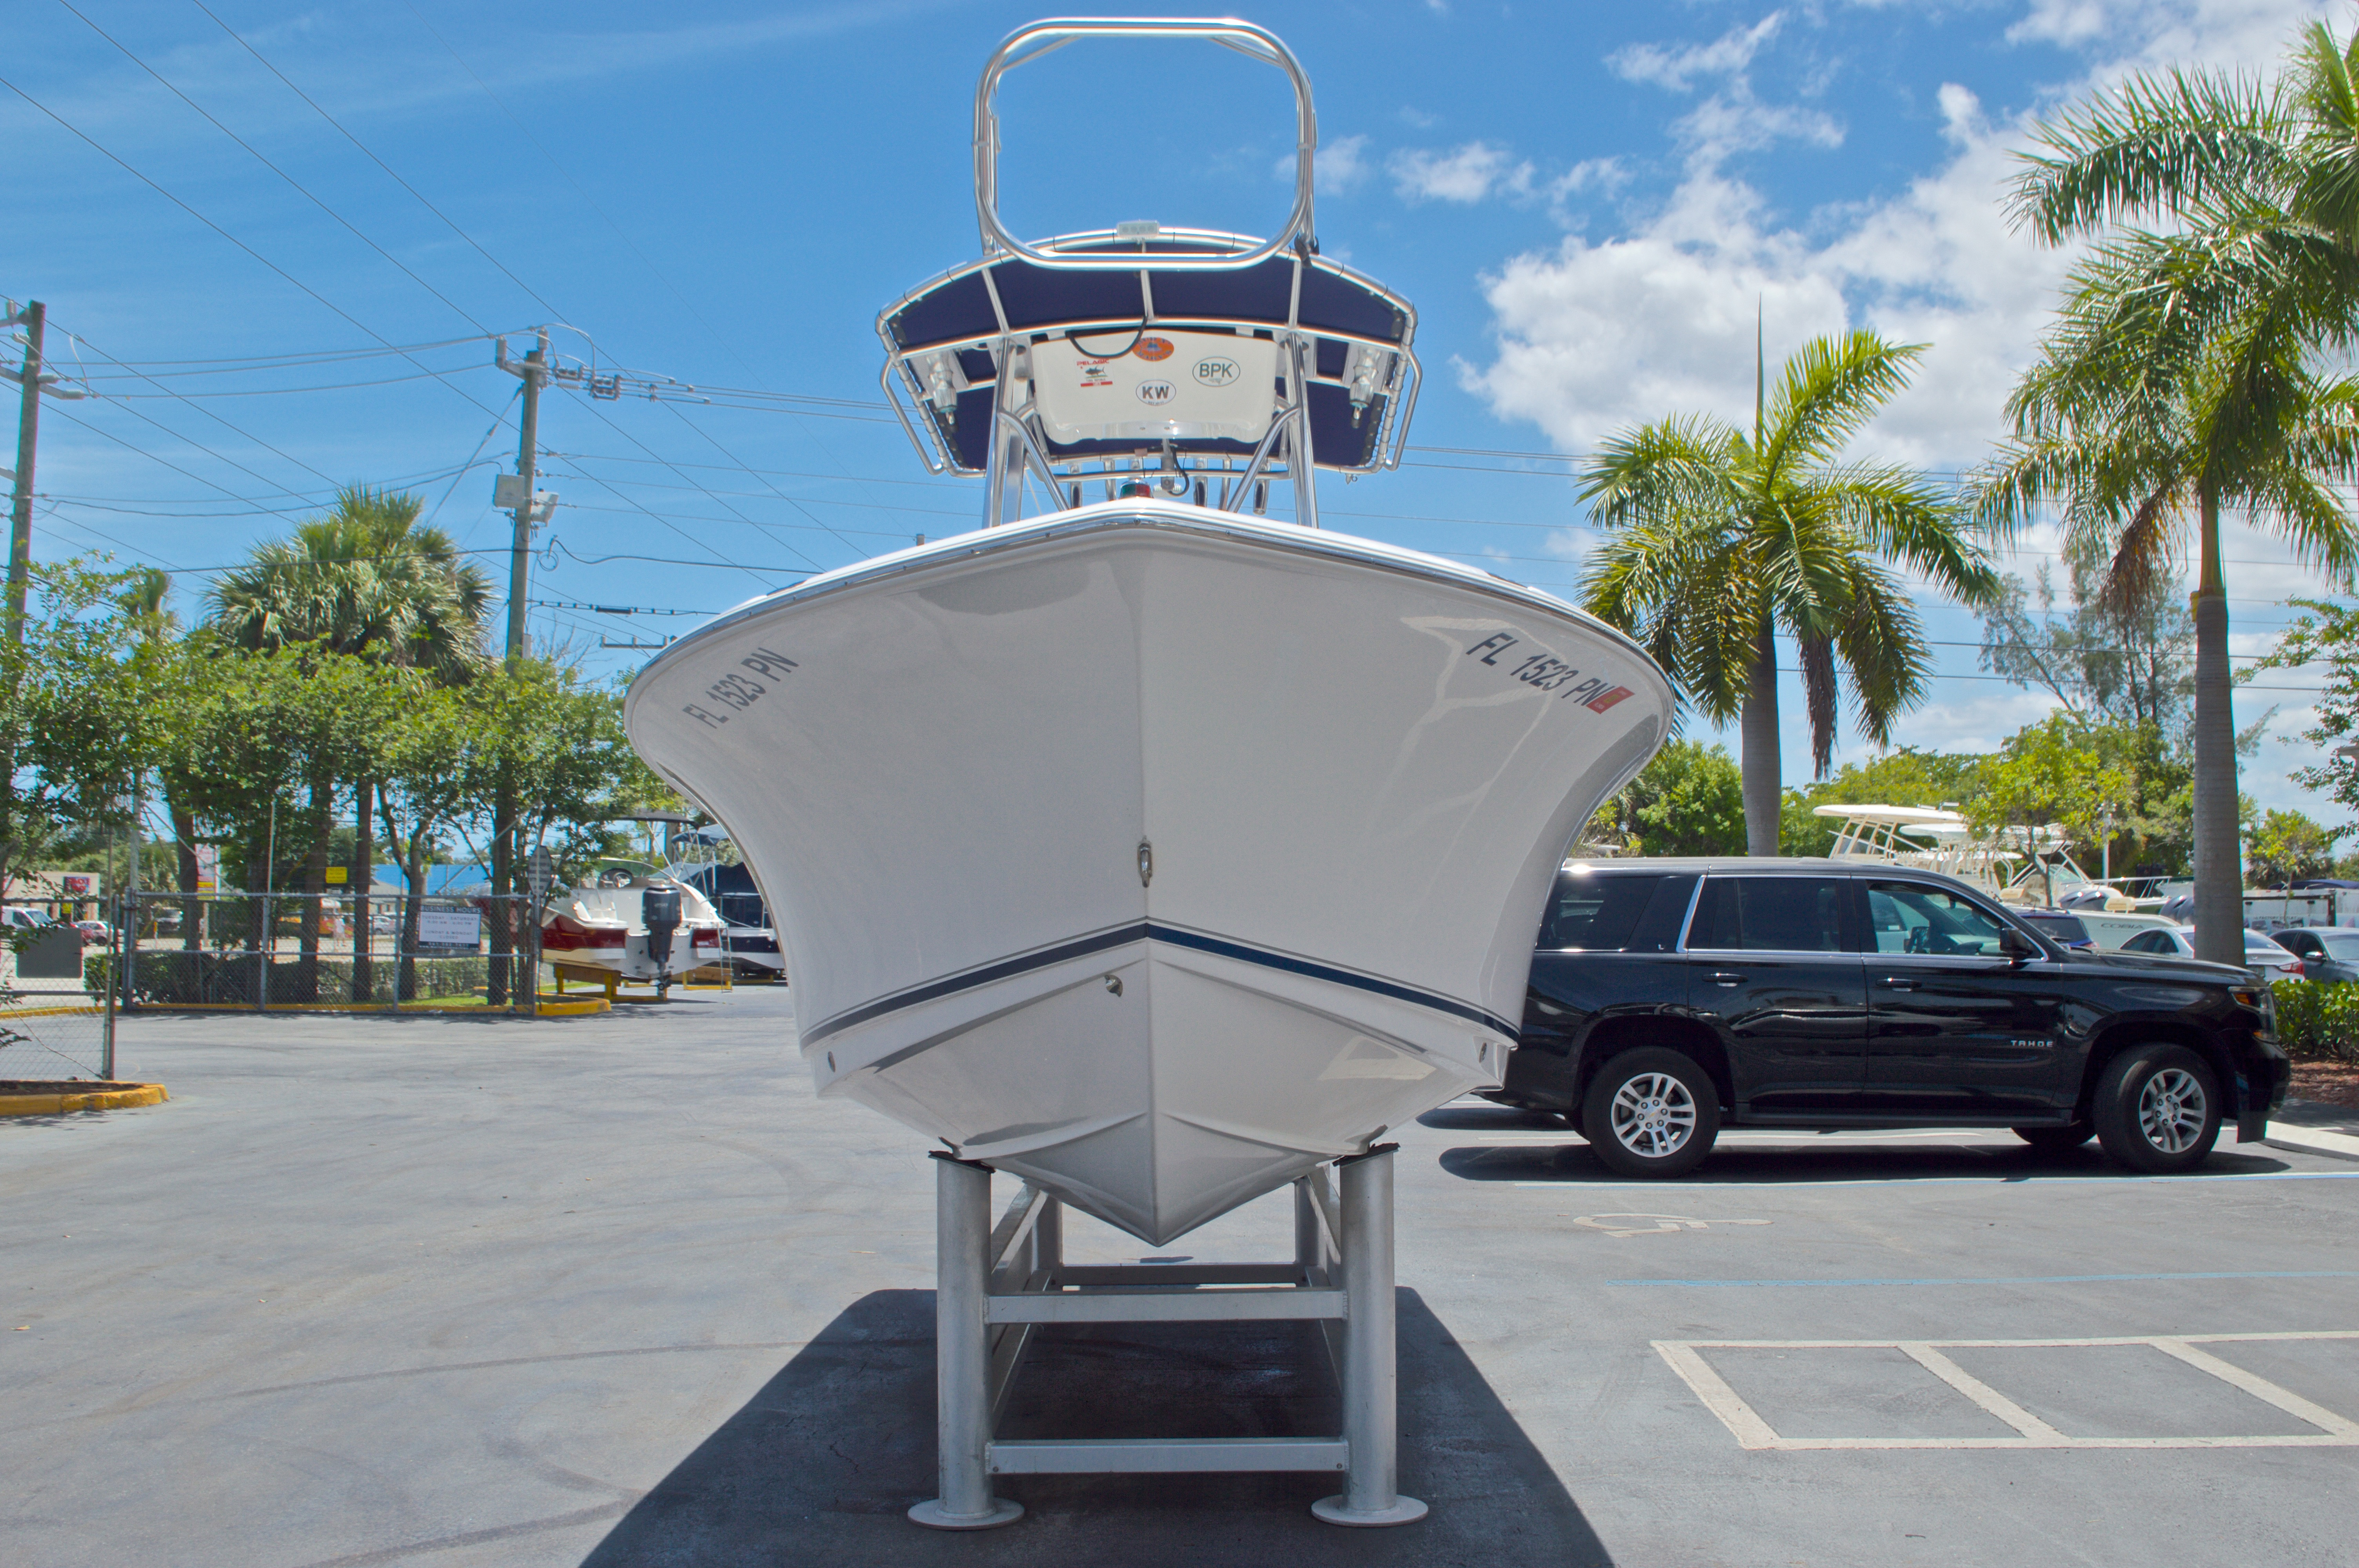 Thumbnail 3 for Used 2013 Sea Hunt 210 Triton boat for sale in West Palm Beach, FL